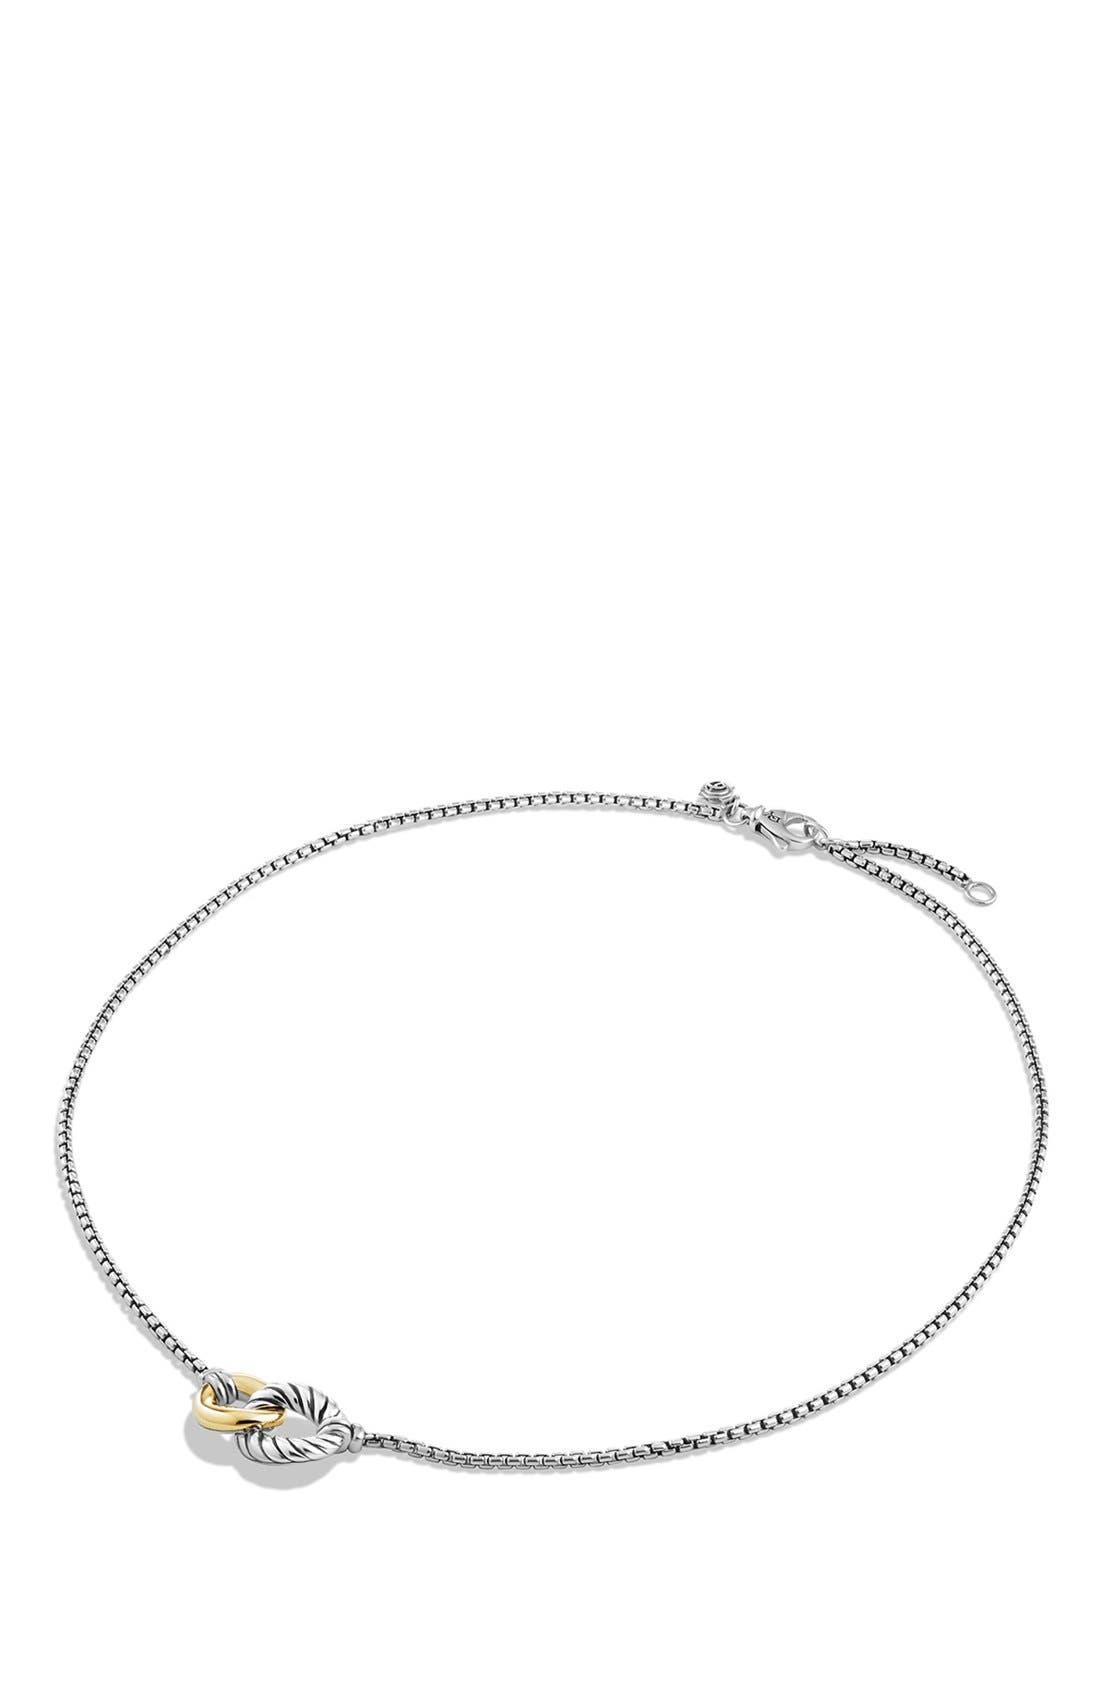 'Belmont' Curb Link Necklace with 18K Gold,                             Alternate thumbnail 2, color,                             TWO TONE